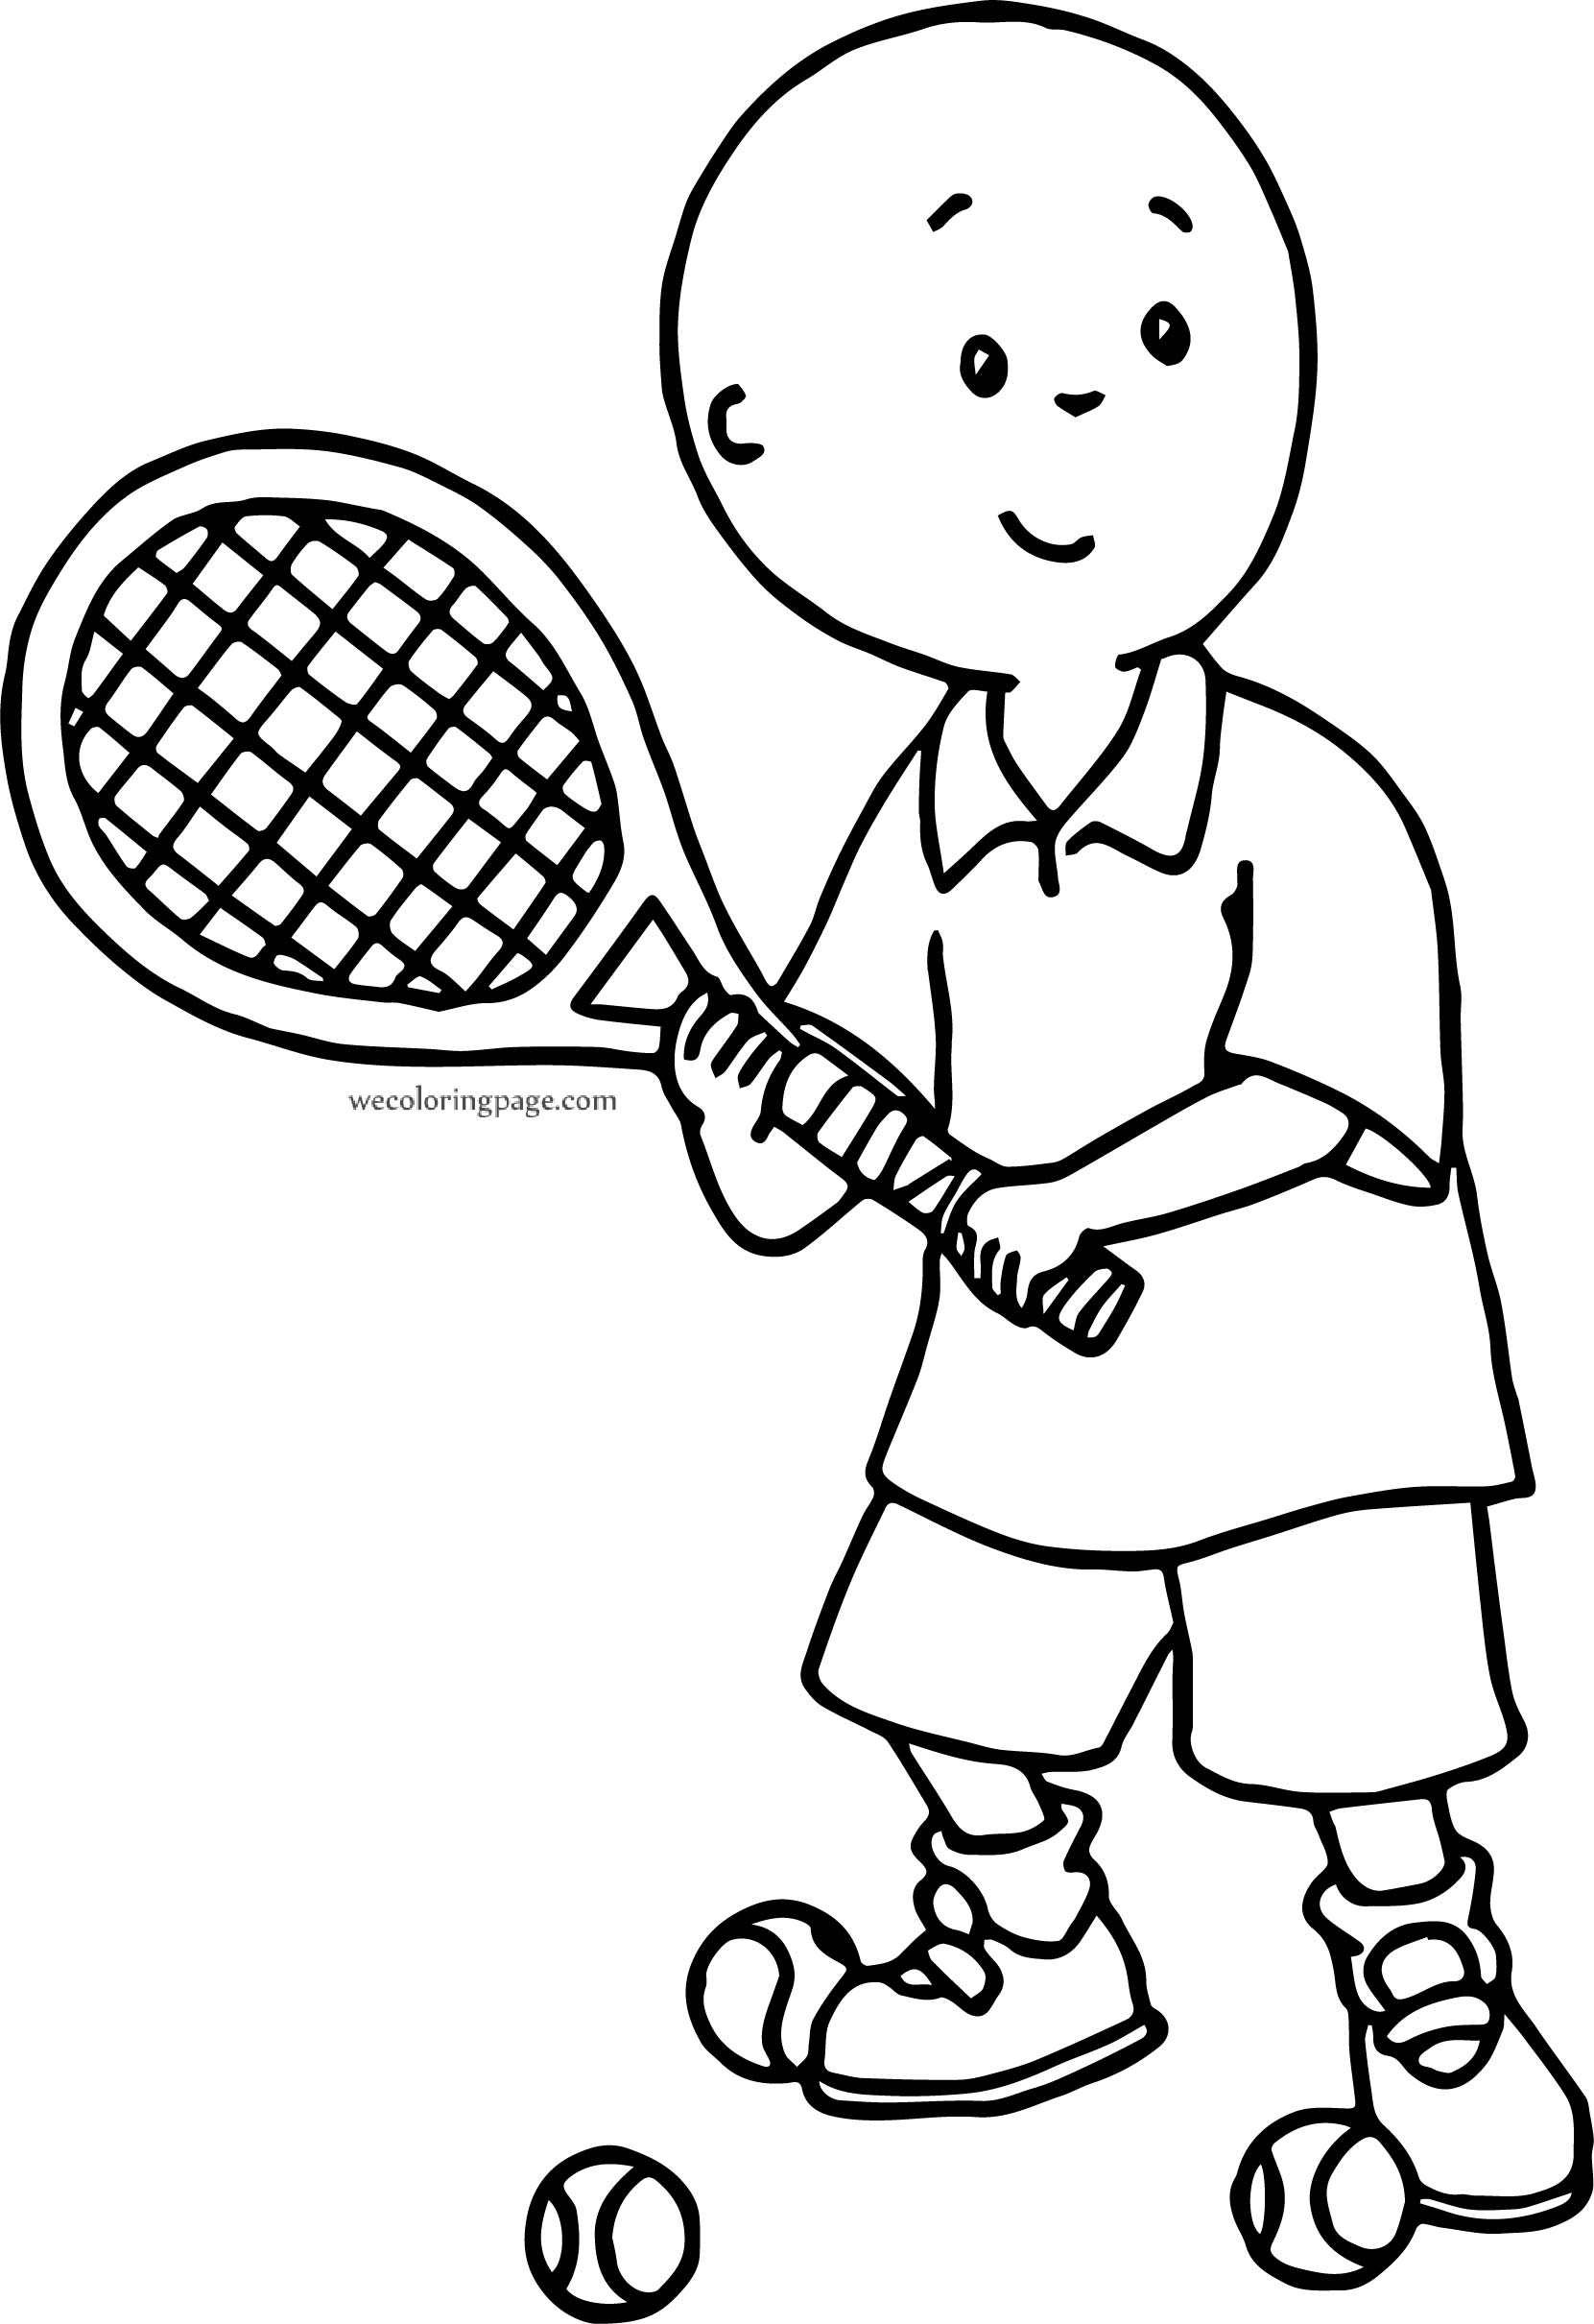 Caillou Tennis Player Coloring Page